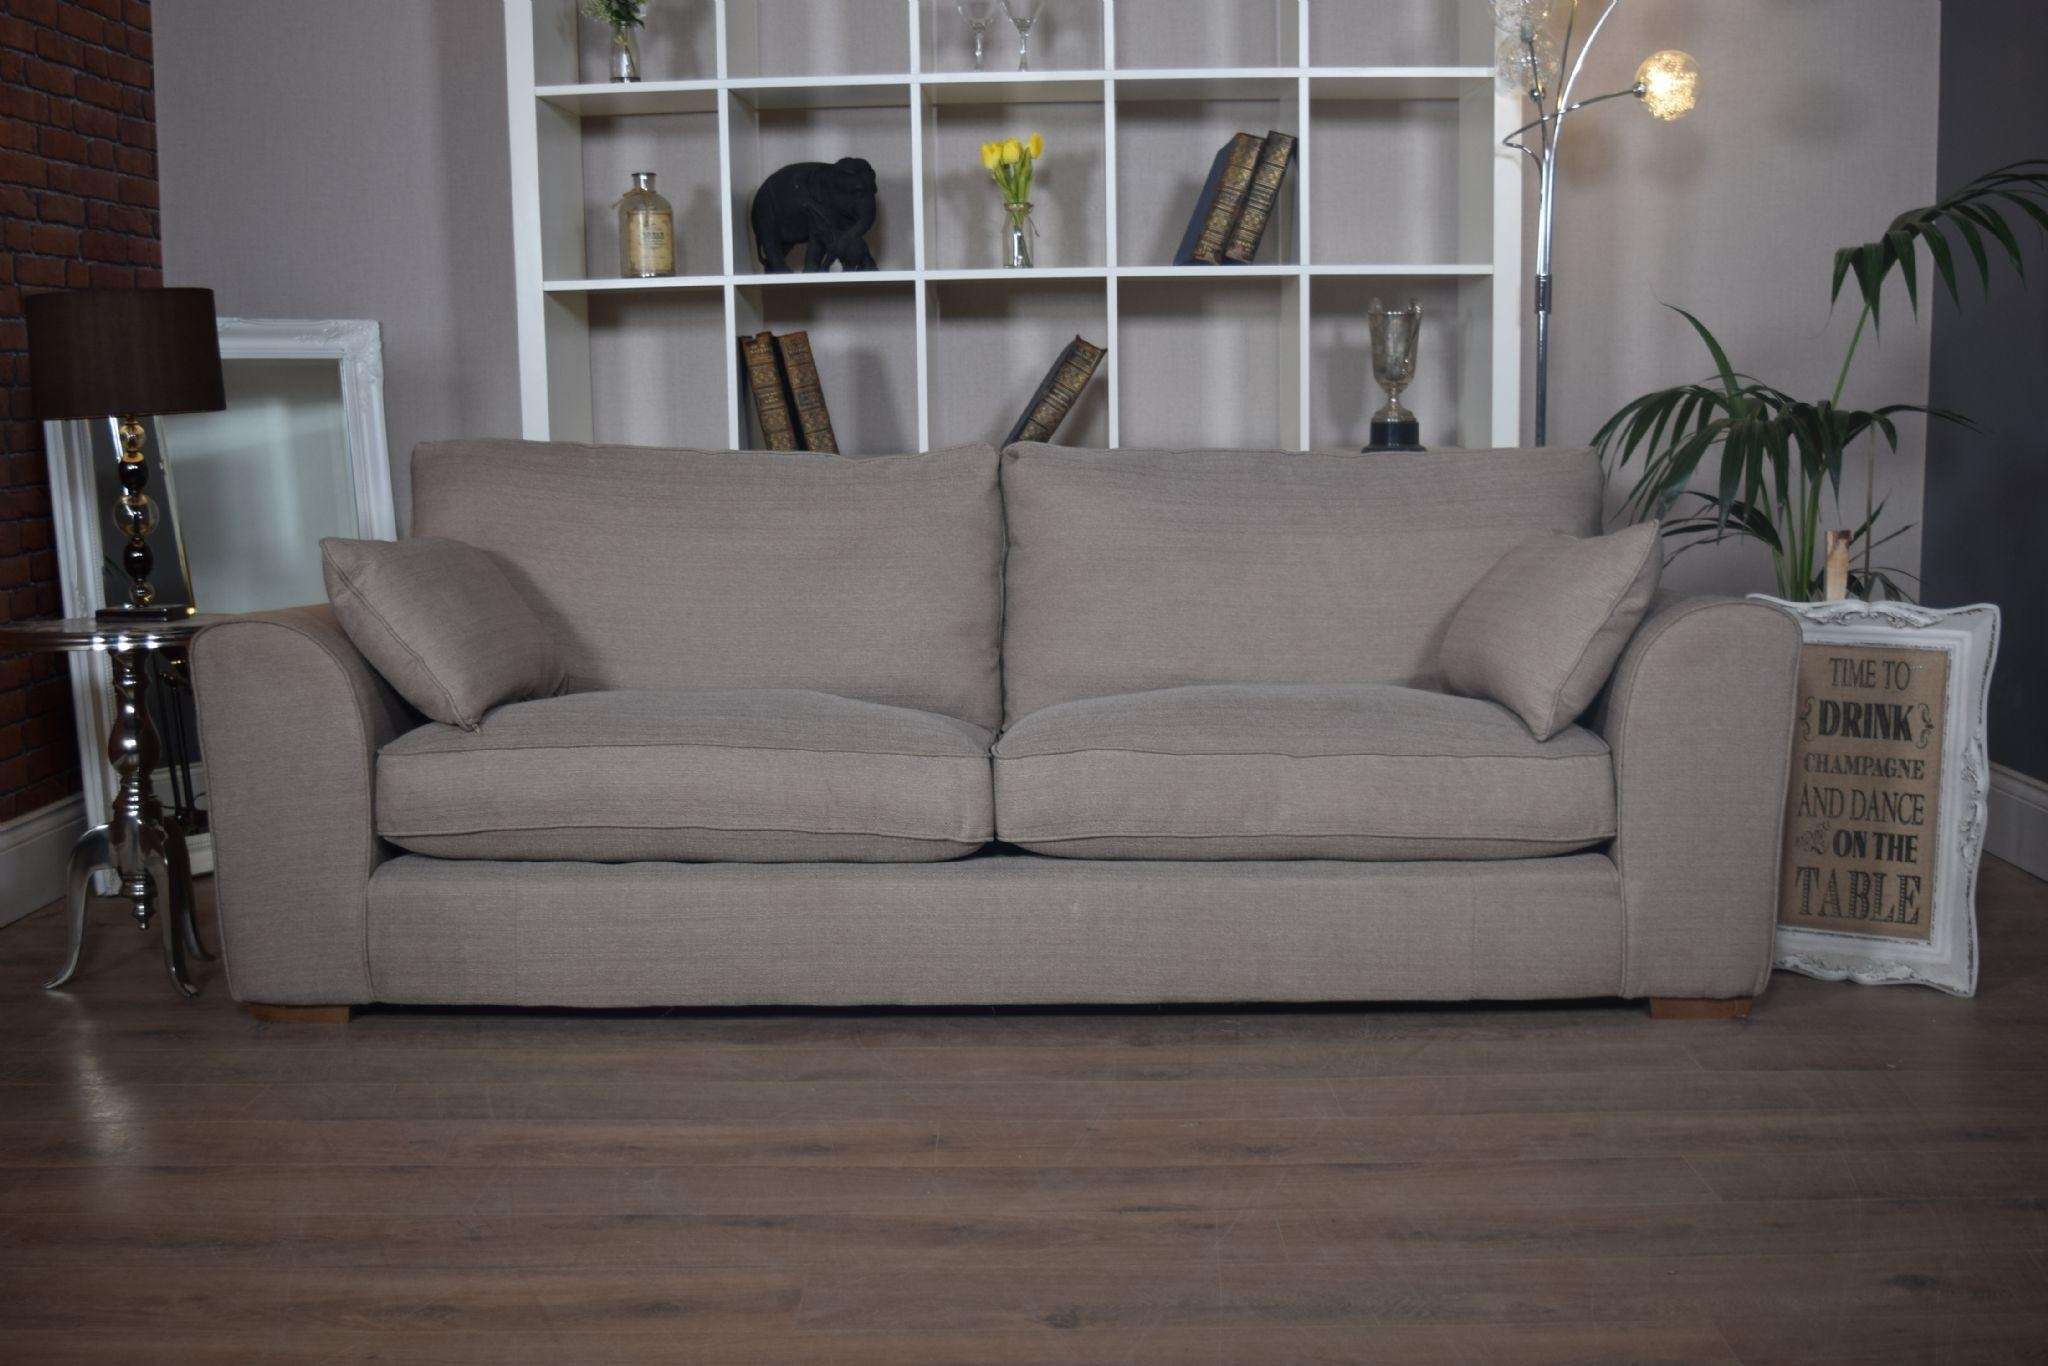 Set New Ashdown 3 Seater Sofa & Cuddle Chair Set – Beige Mink Regarding 3 Seater Sofa And Cuddle Chairs (View 2 of 20)